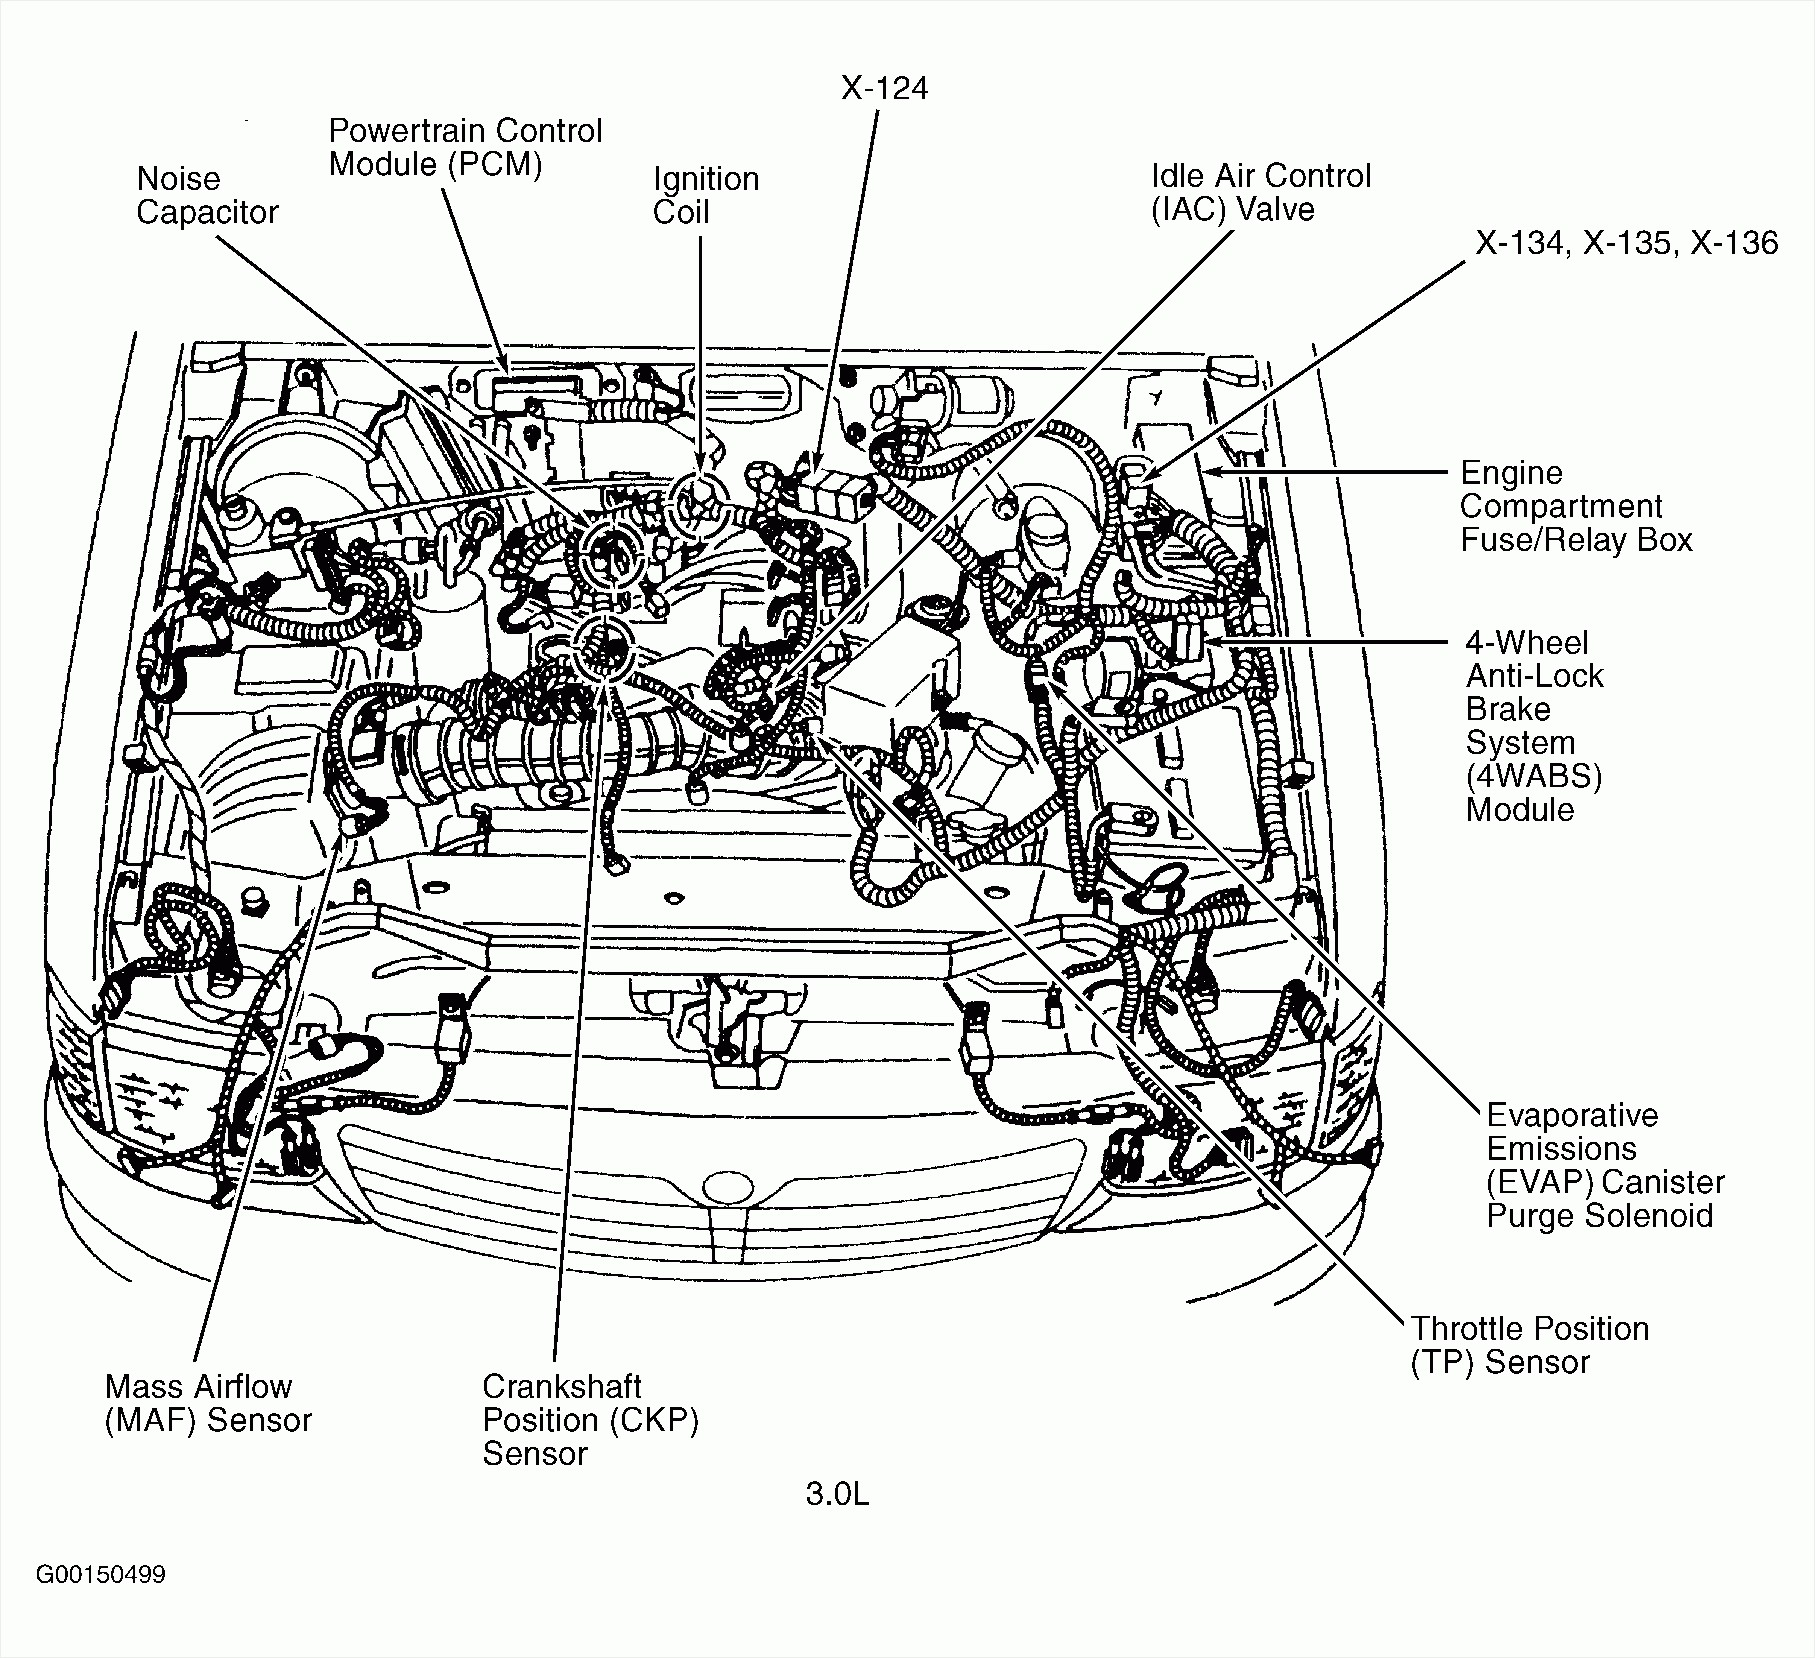 hight resolution of jeep 3 8l engine diagram wiring diagram inside diagram of jeep 3 8l v6 engine manual